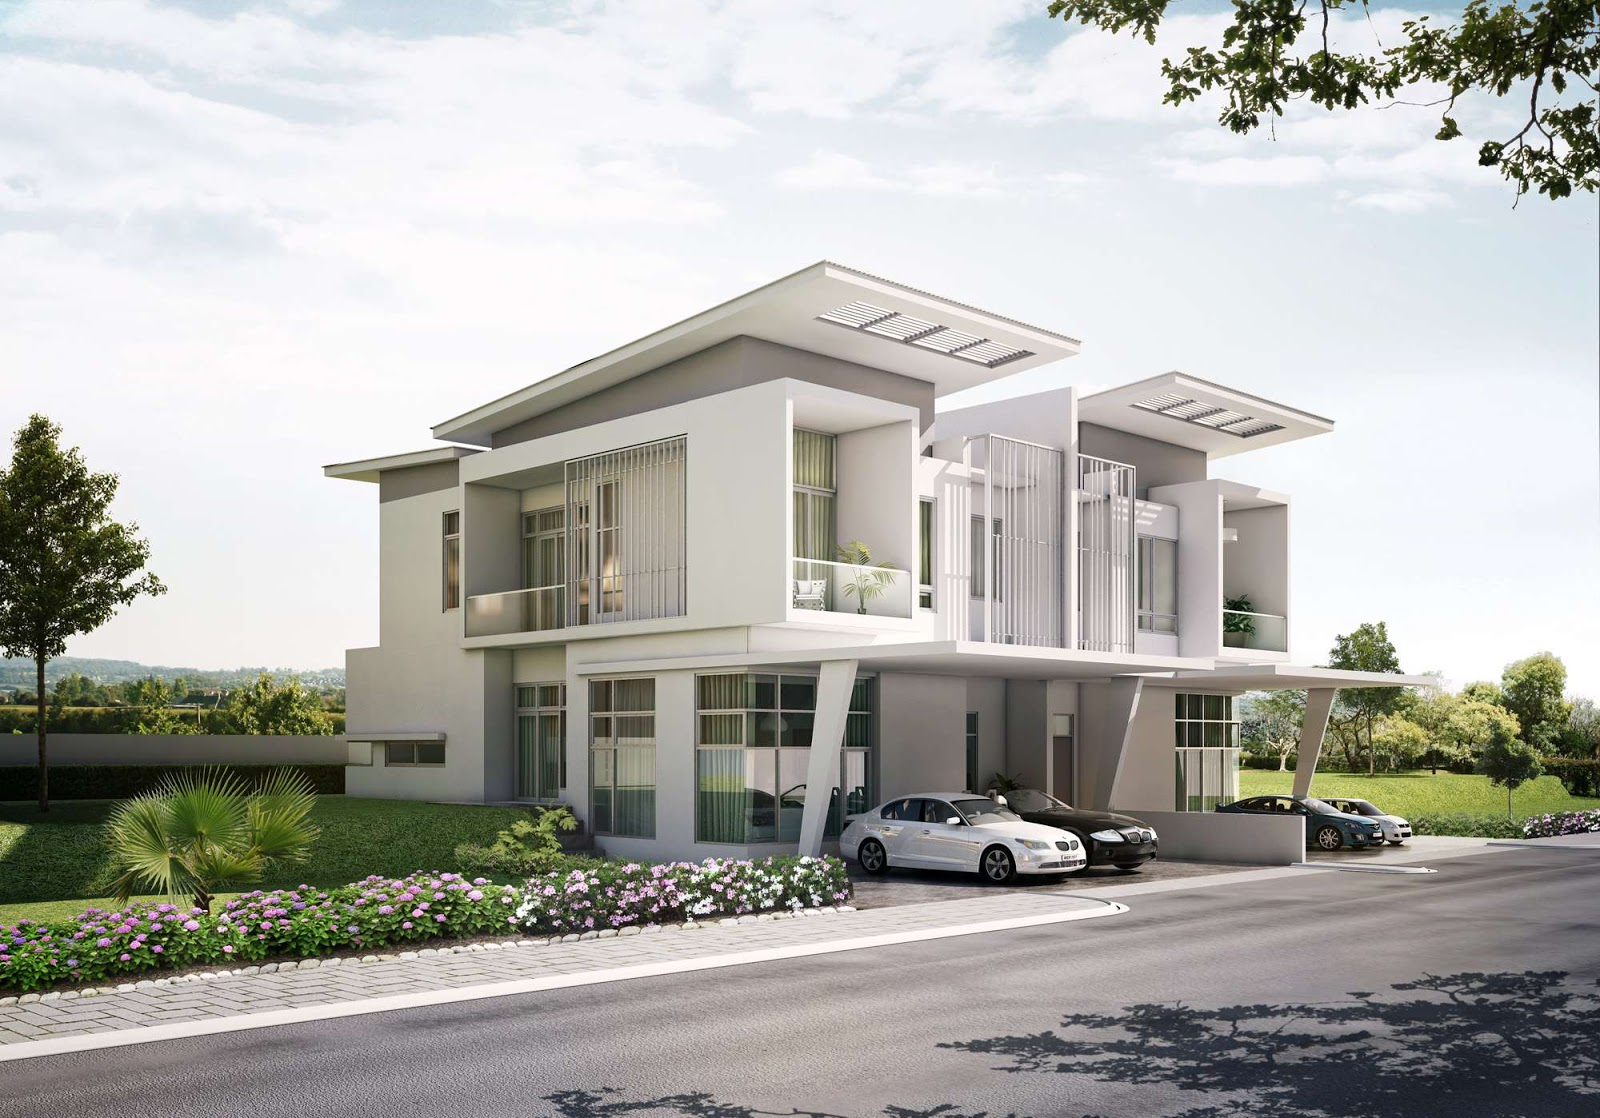 Singapore modern homes exterior designs home interior for Modern house models pictures